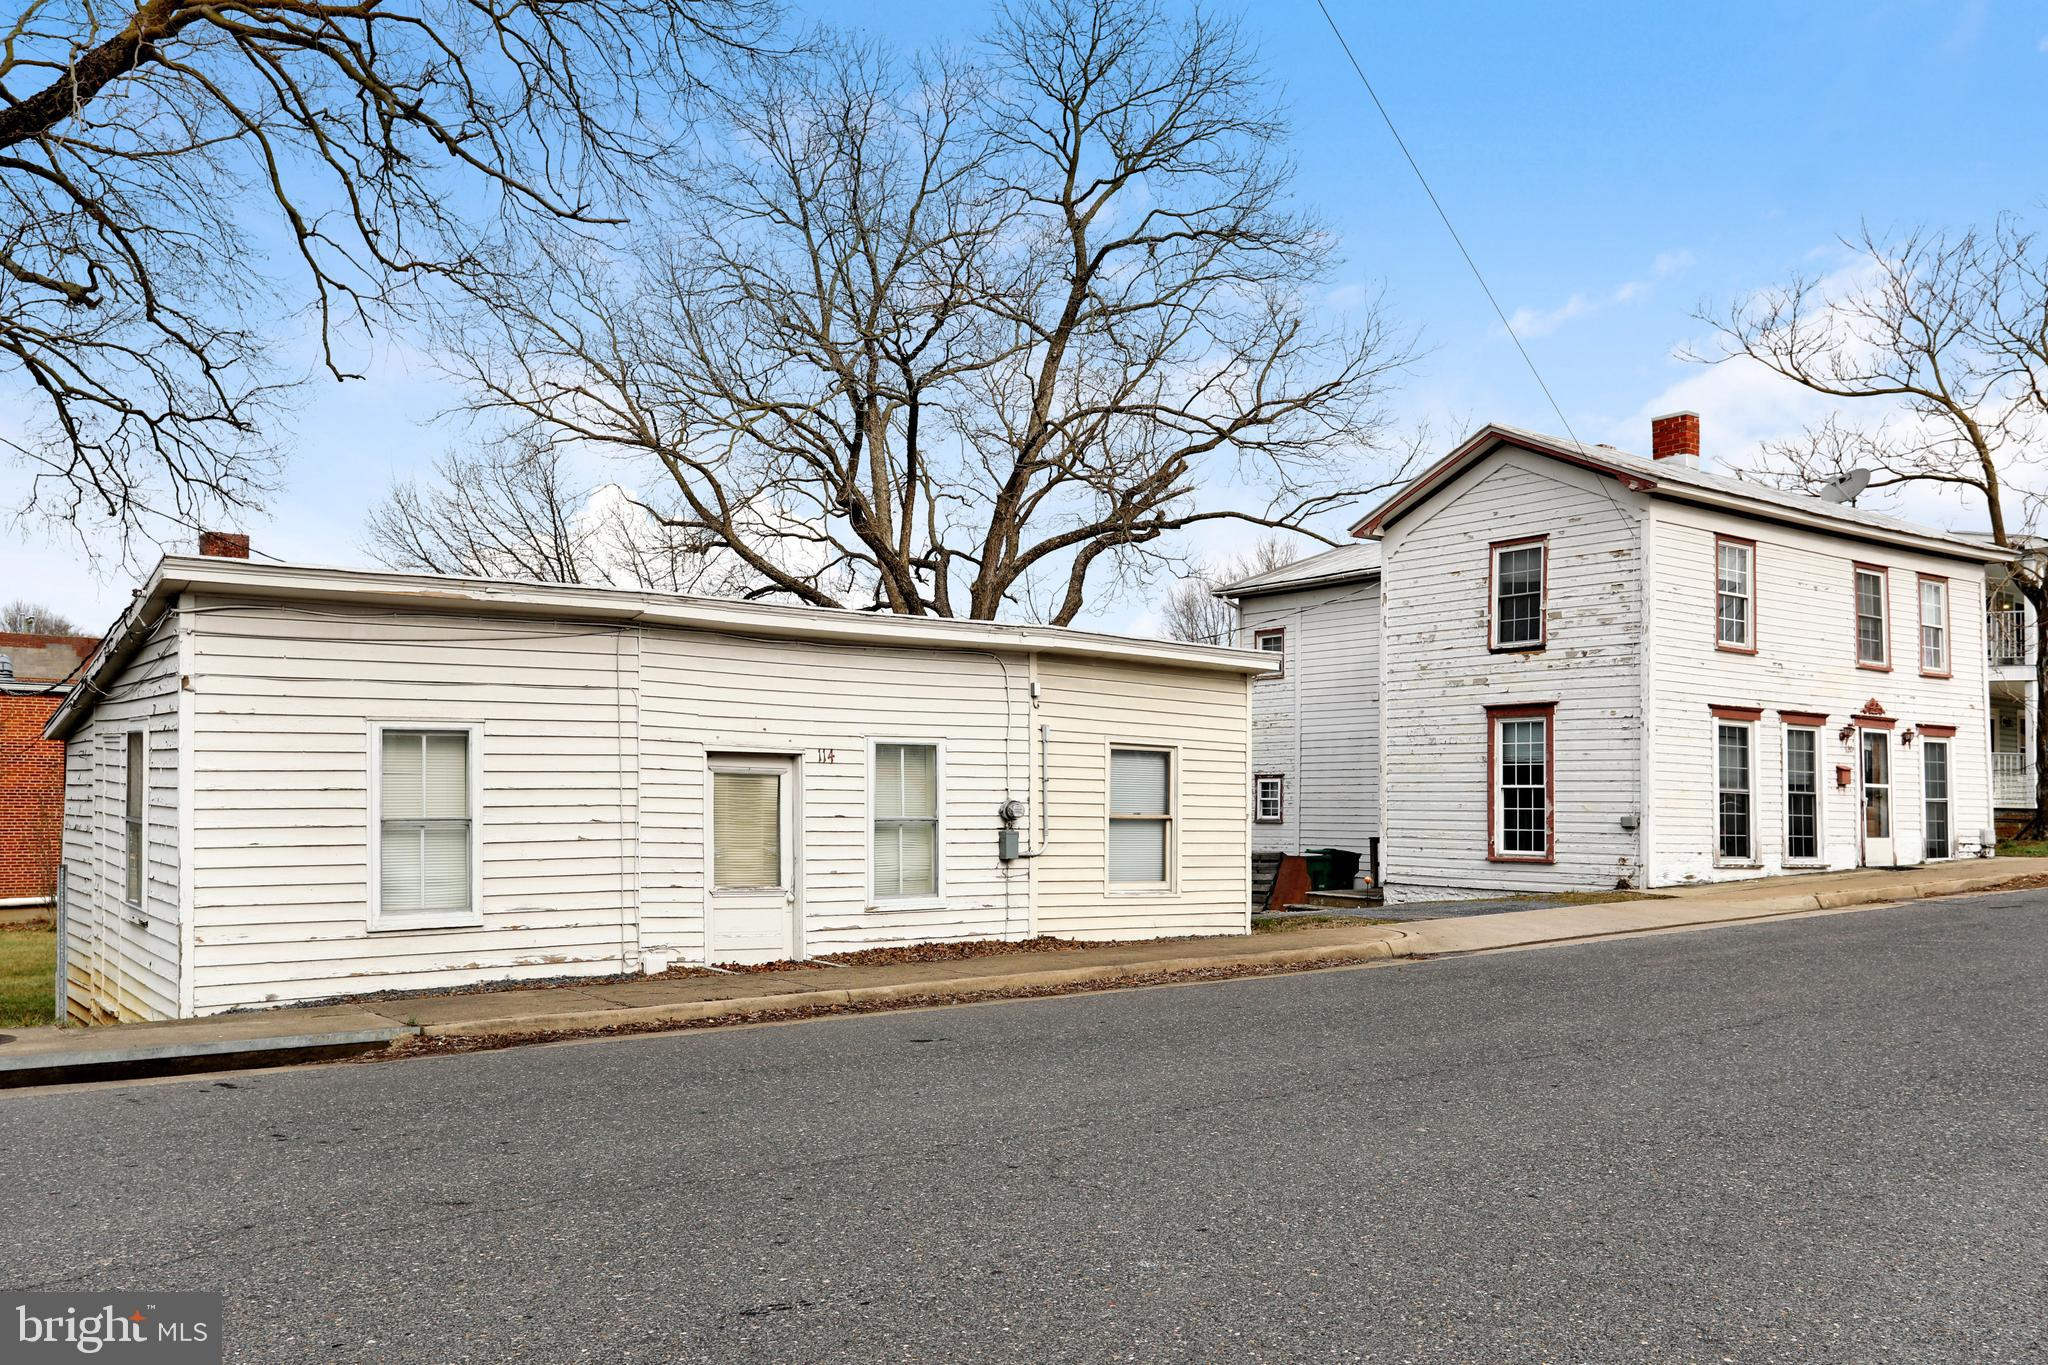 120 N CENTRAL STREET, BROADWAY, VA 22815